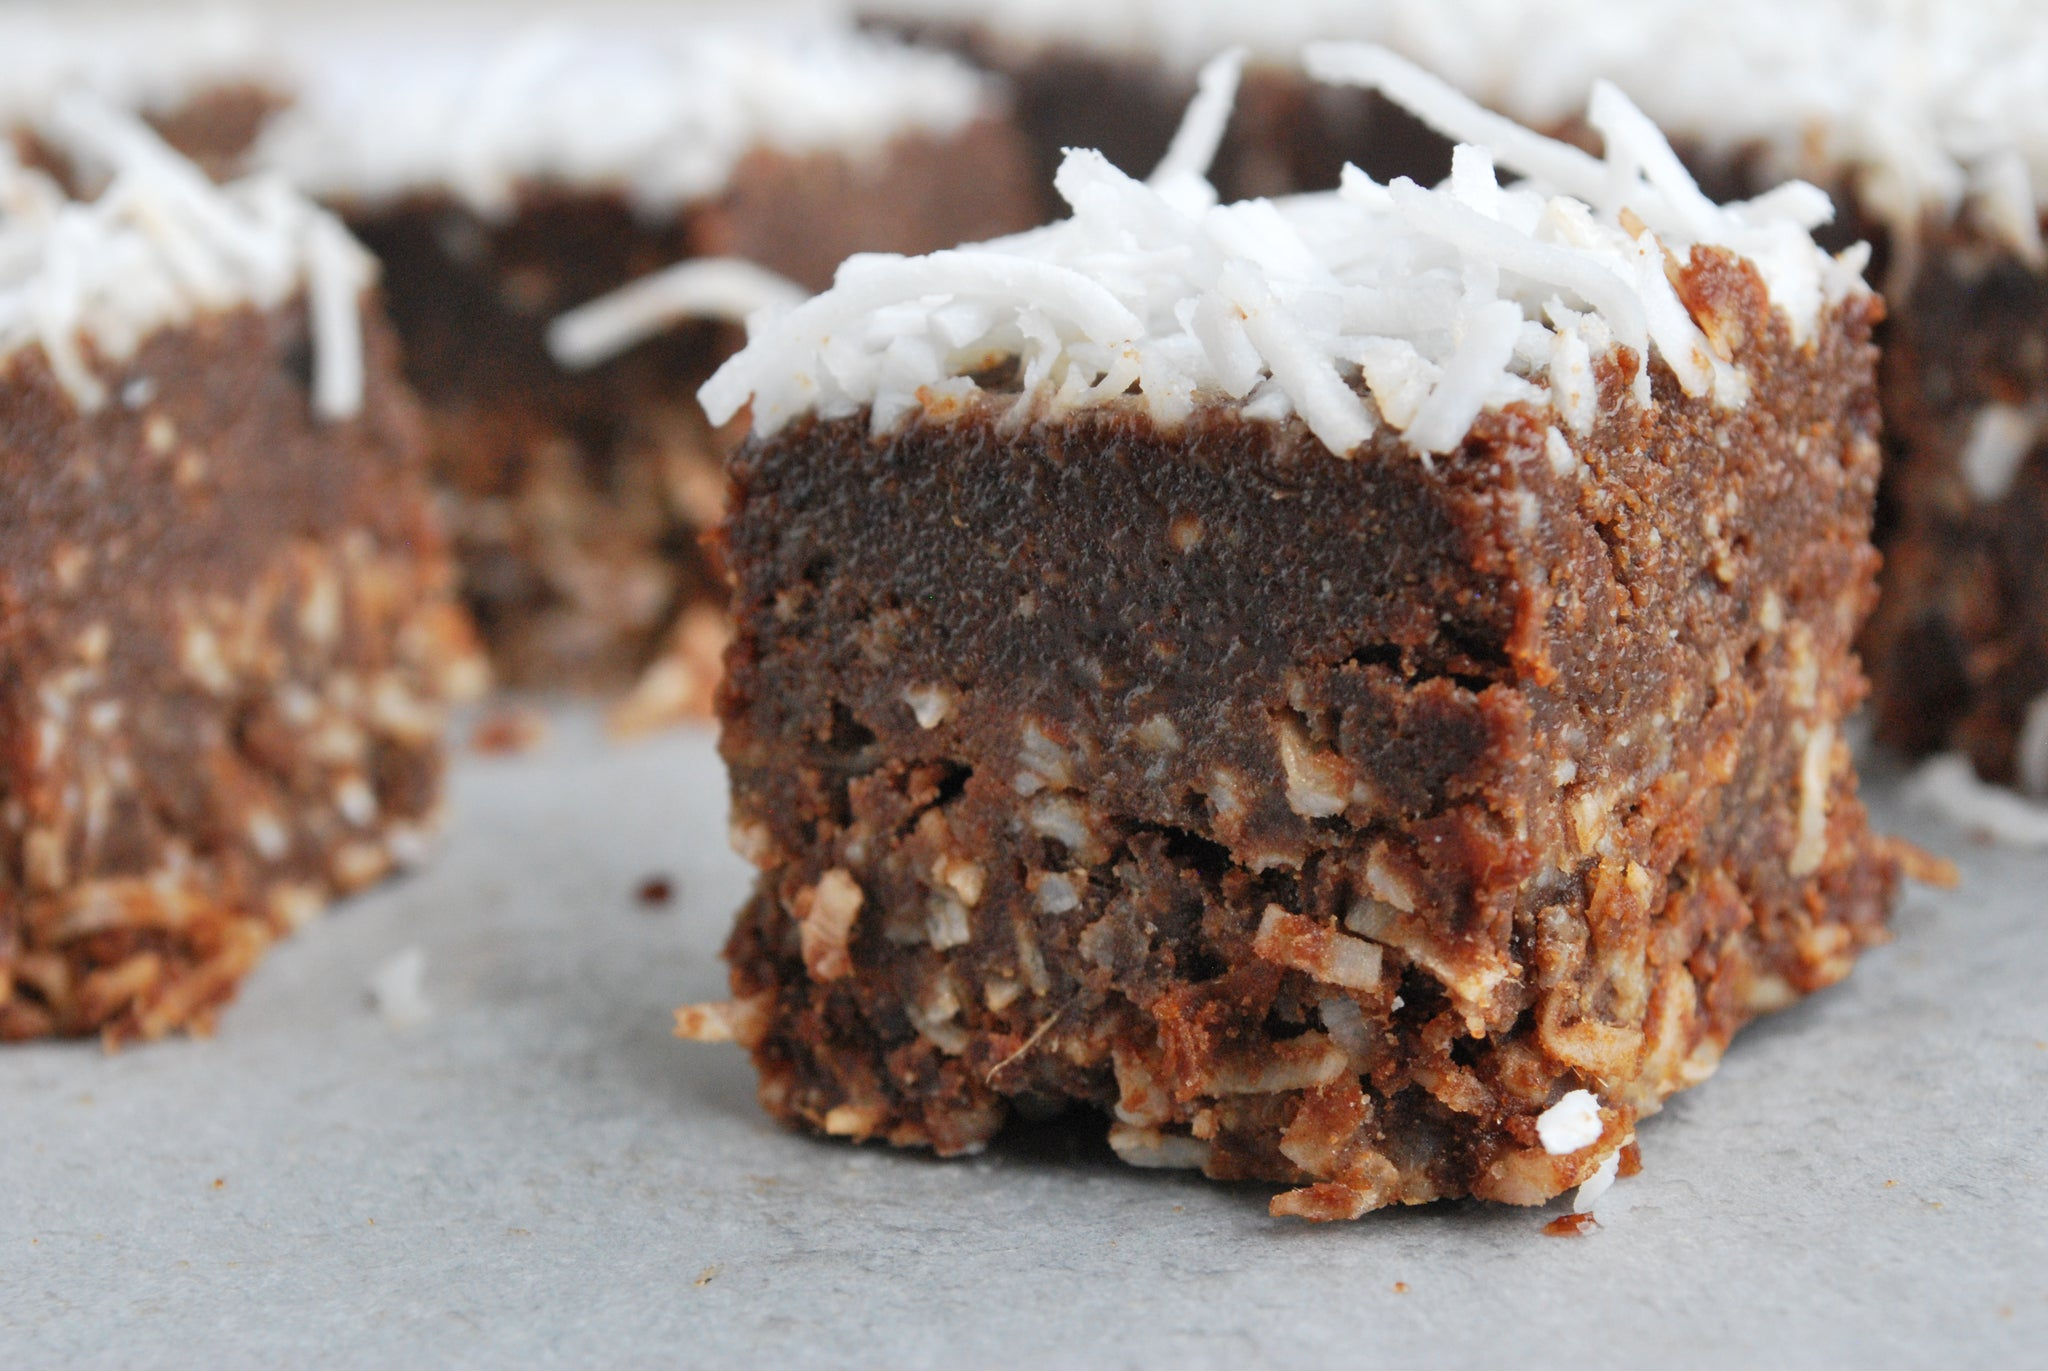 Carob Coconut Rough Slice